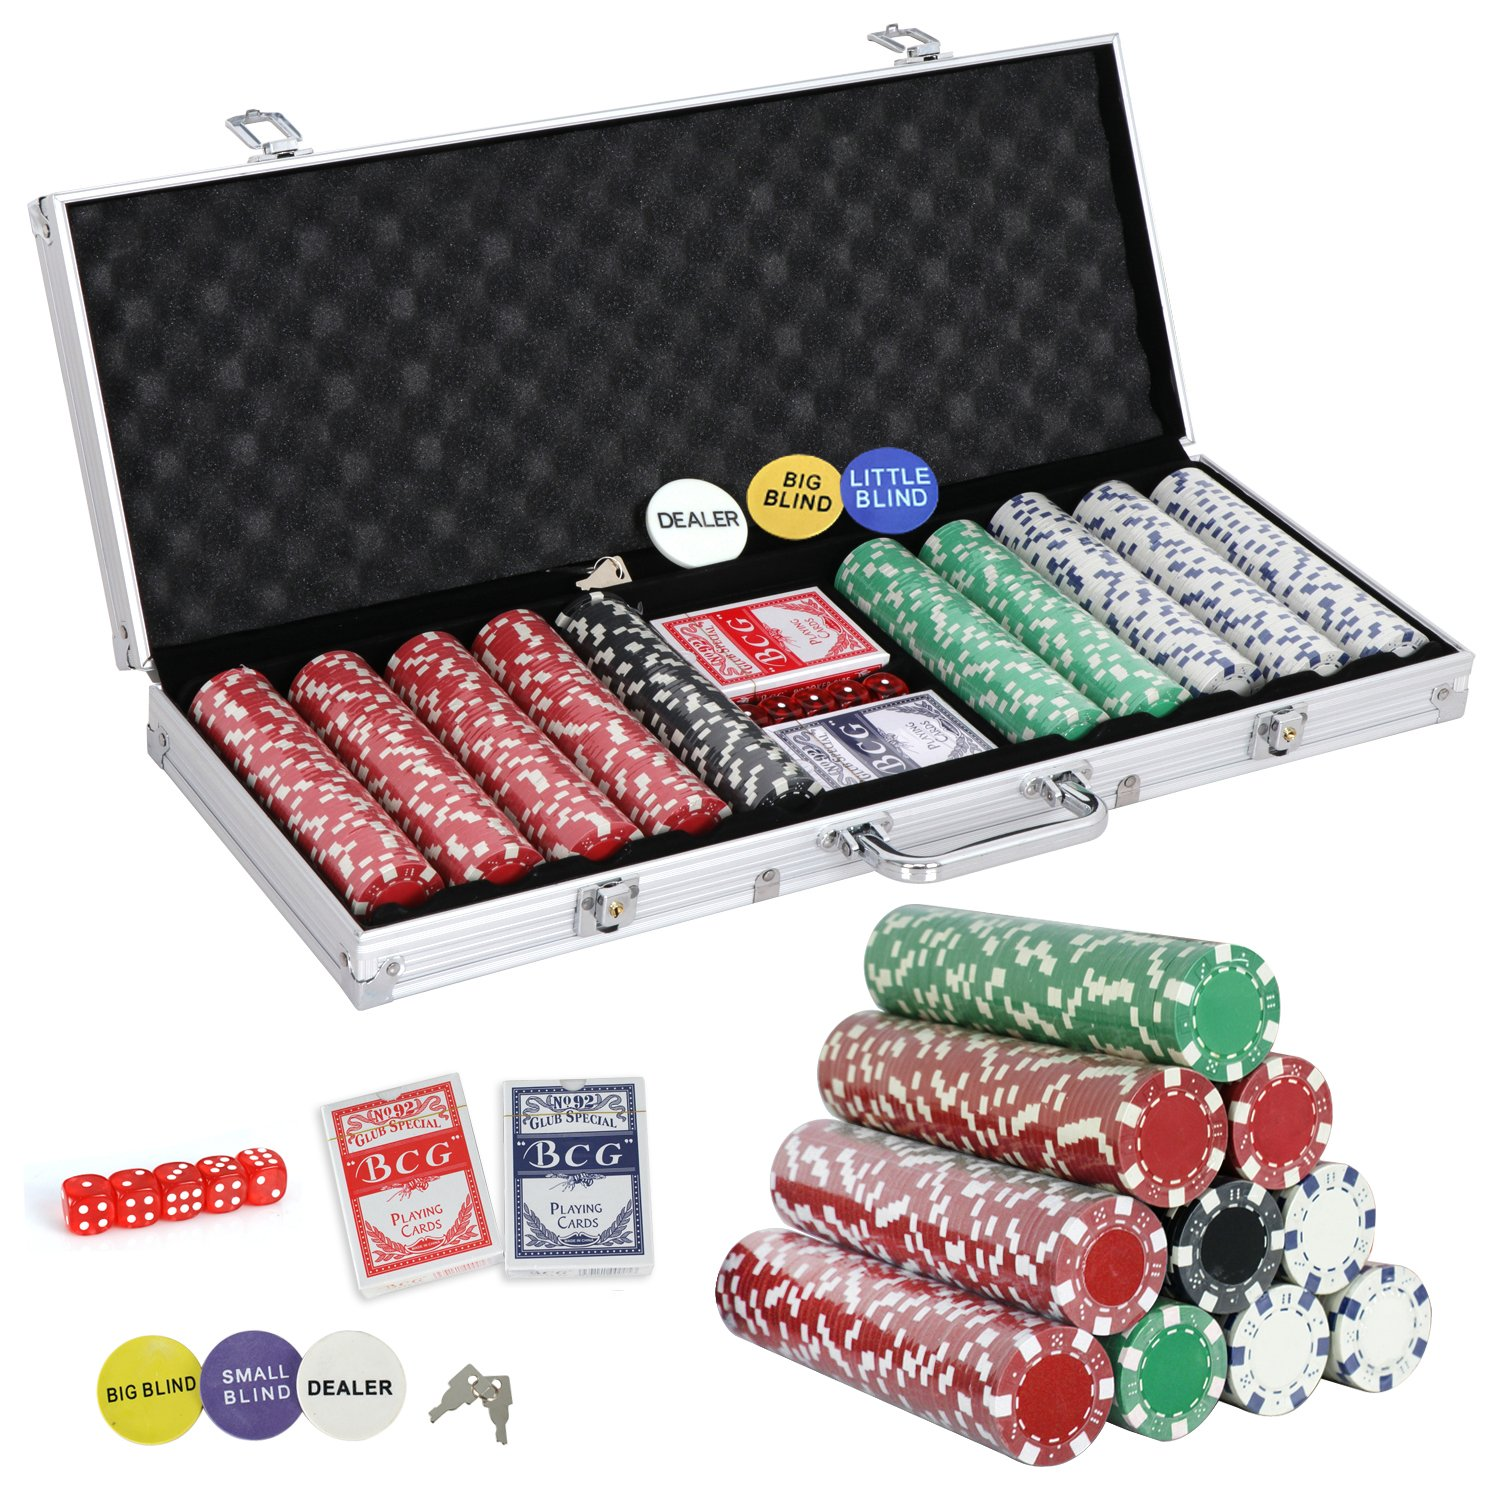 Smartxchoices 500 Poker Chip Set 11.5 Gram Dice Style Clay Casino Poker Chips w/Aluminum Case, Cards, Dices, Blind Button for for Texas Holdem, Blackjack, Gambling by Smartxchoices